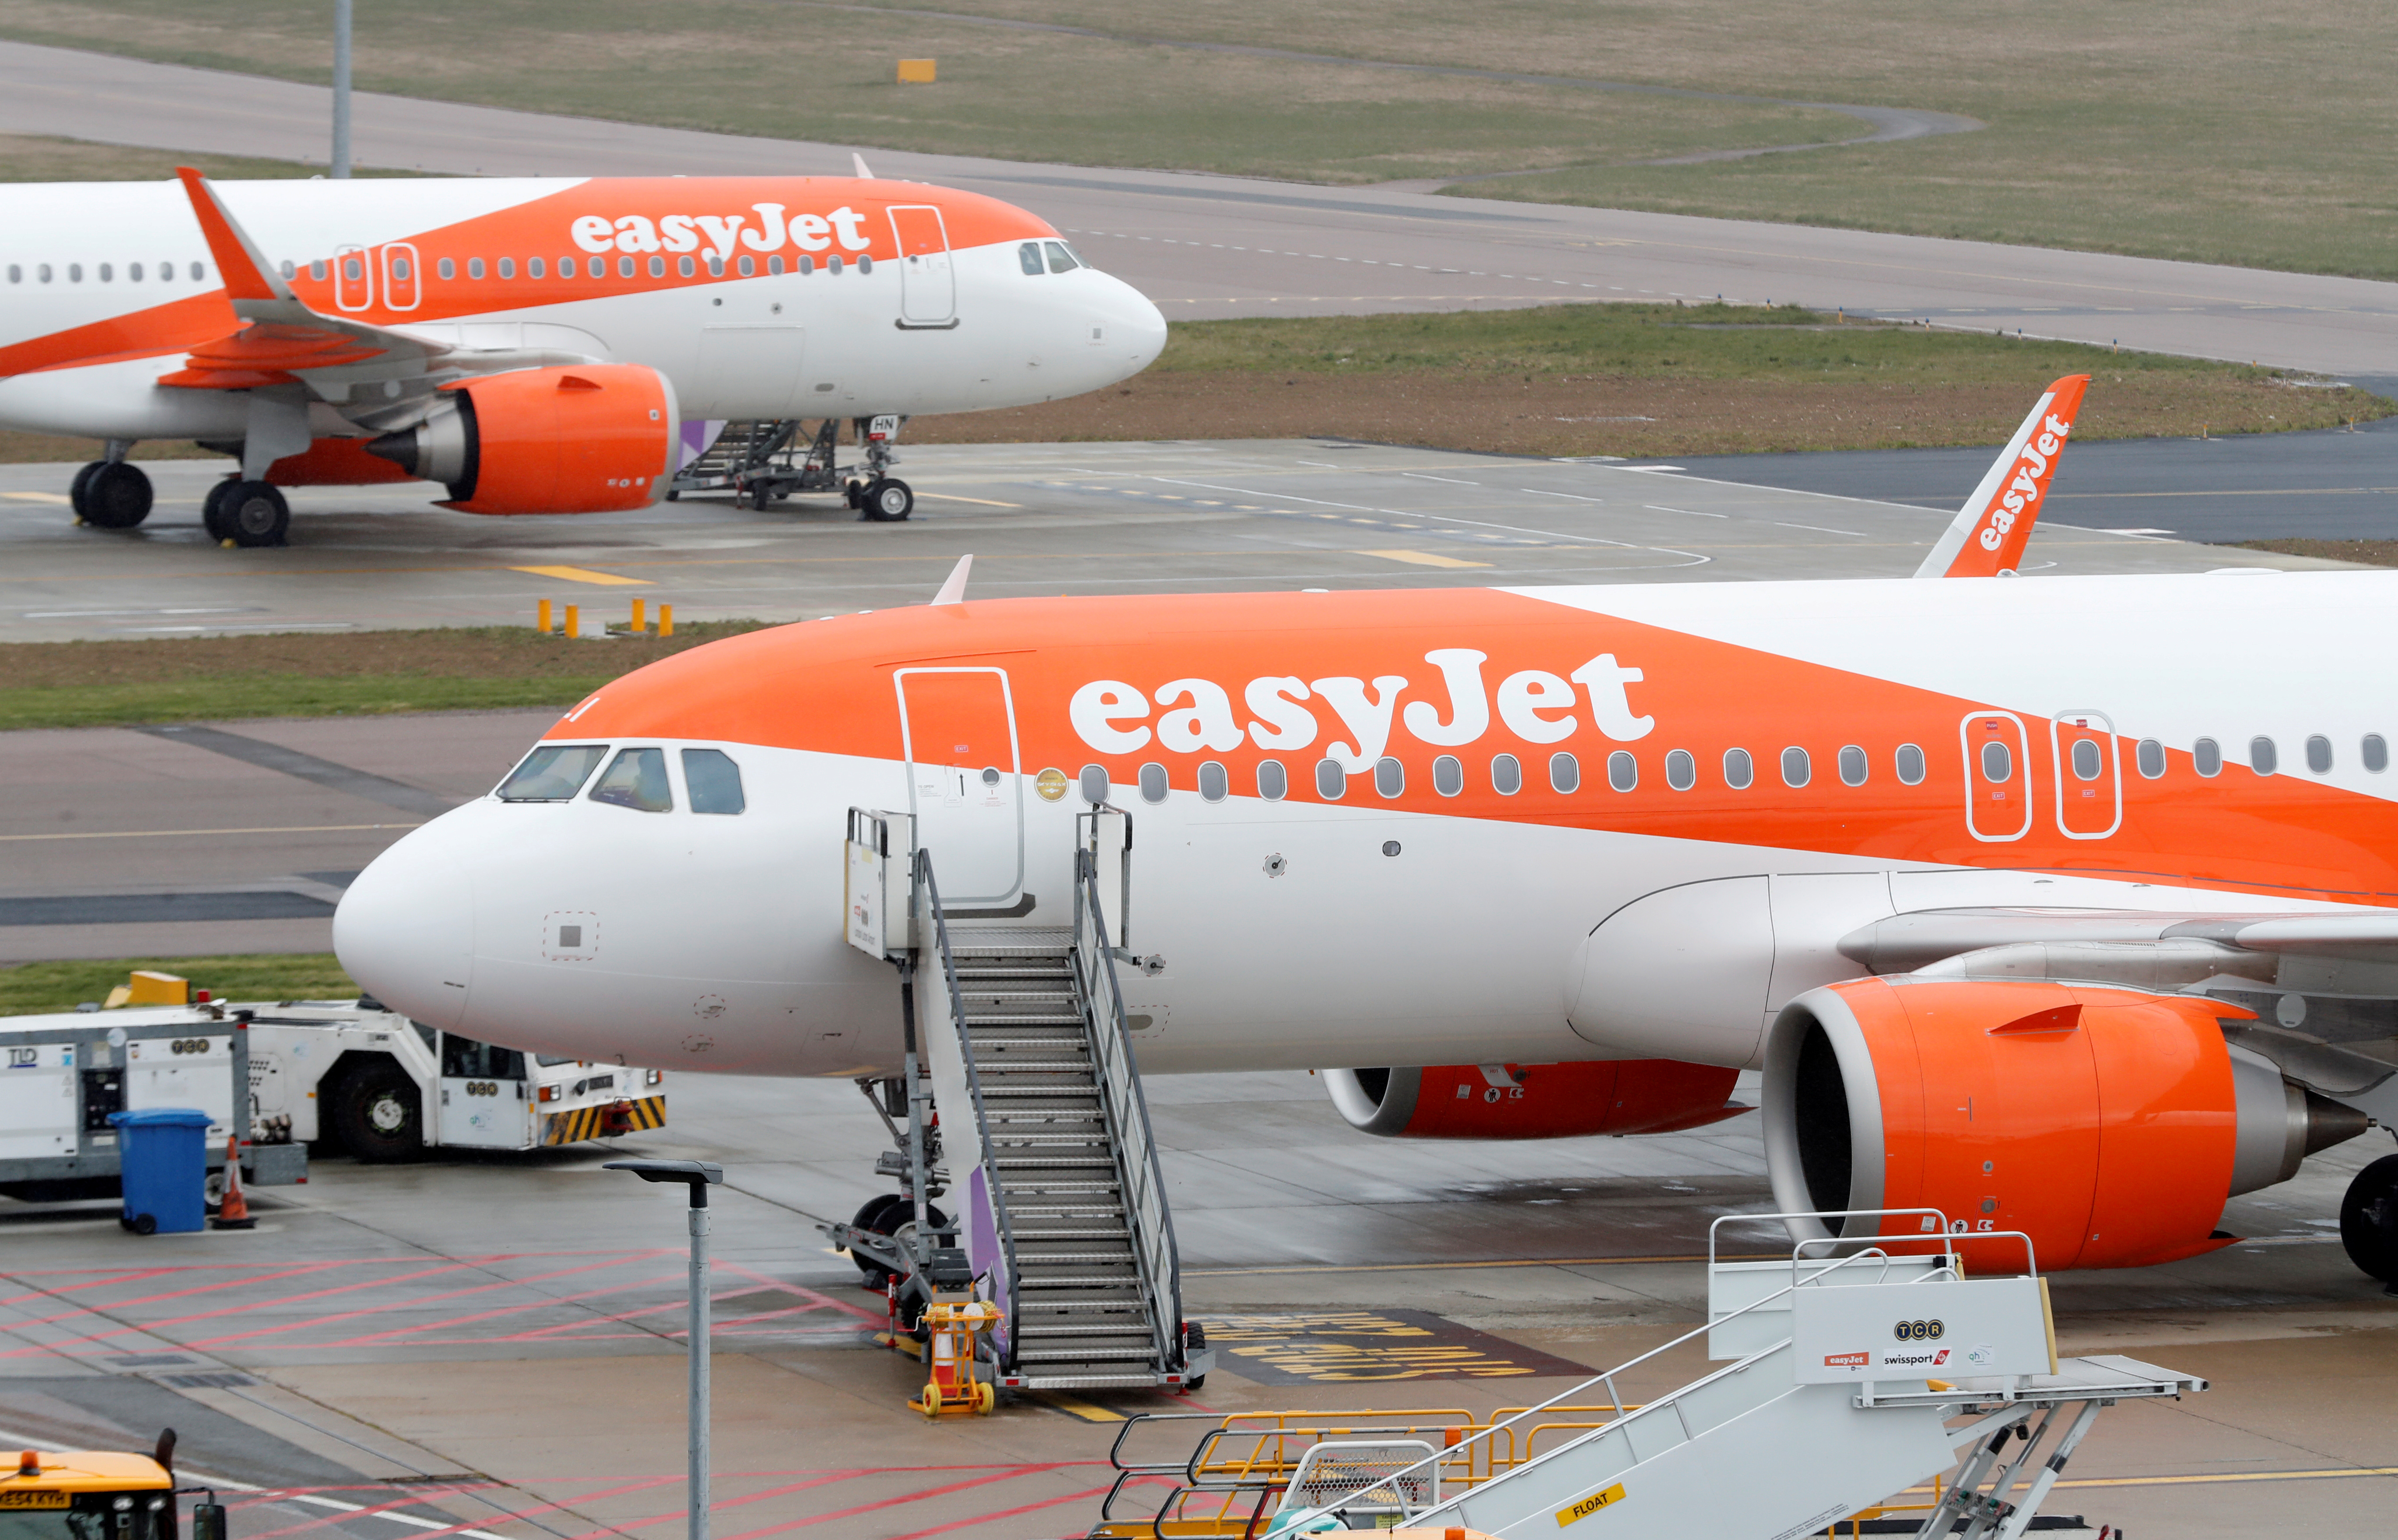 EasyJet founder loses bid to oust management in strategy row, proxy votes show